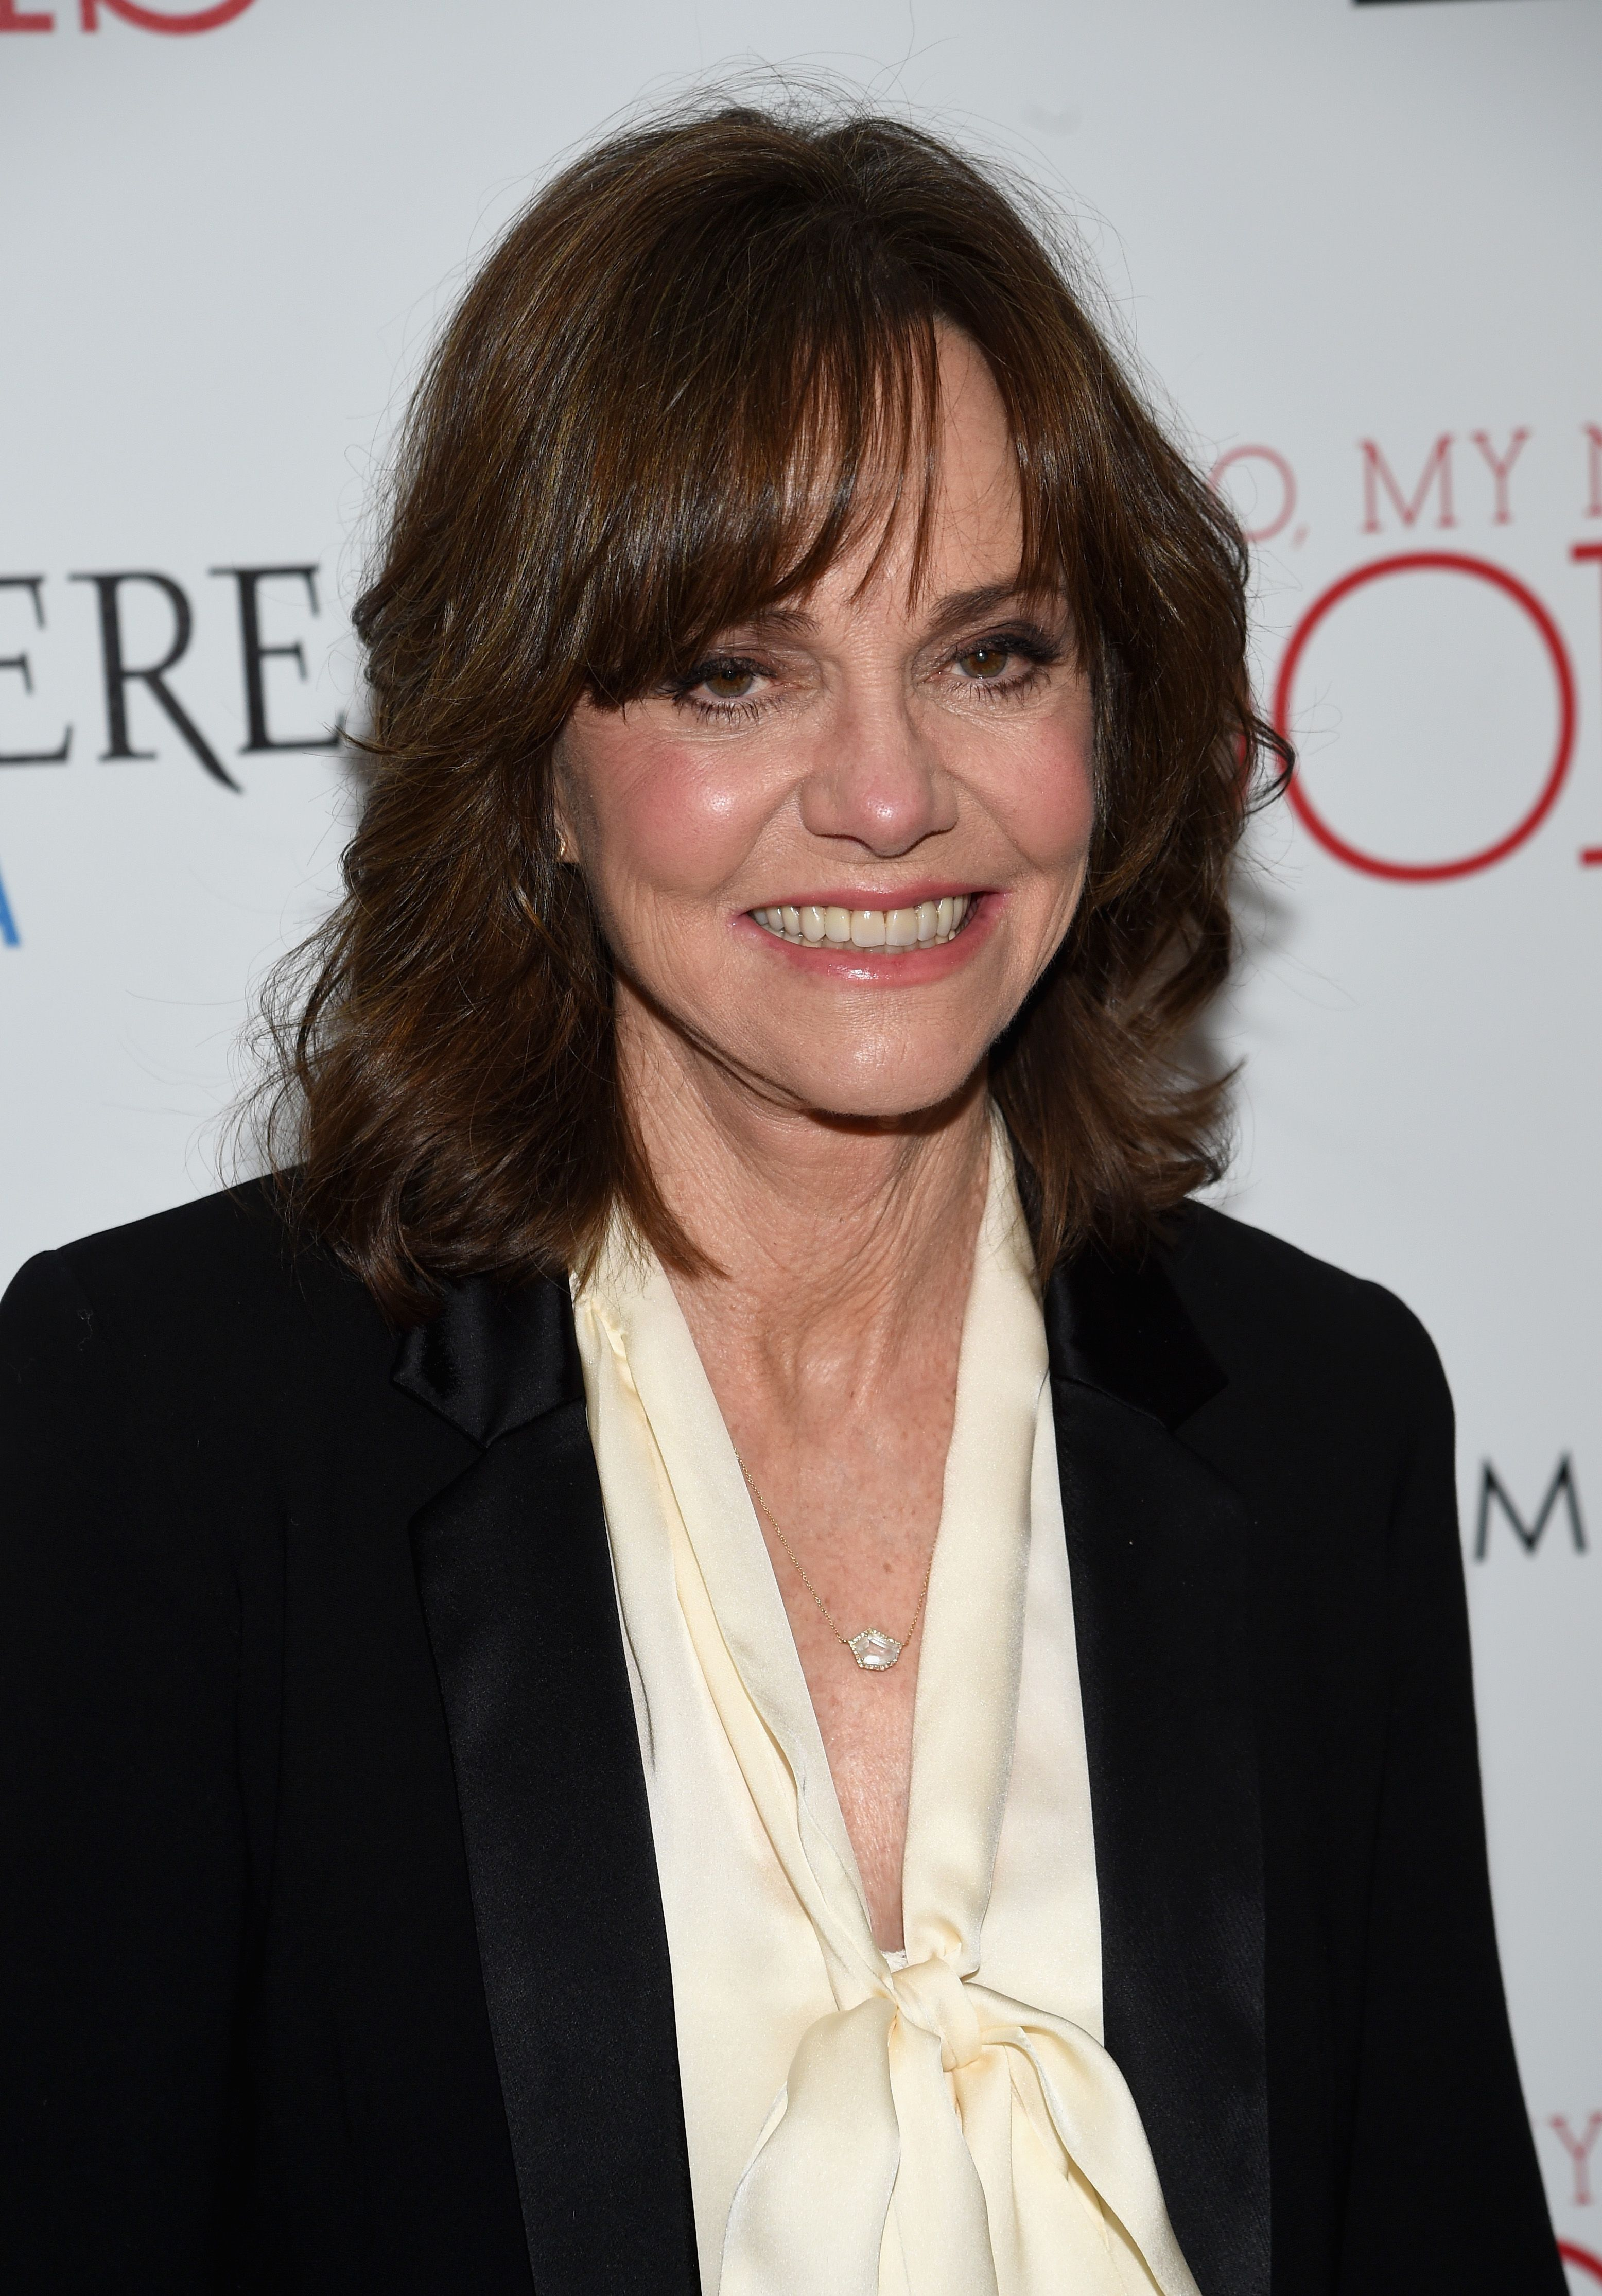 """Actress Sally Field arrives at the New York premiere of """"Hello, My Name Is Doris"""" hosted by Roadside Attractions with The Cinema Society & Belvedere Vodka at Metrograph on March 7, 2016 in New York City   Photo: Getty Images"""